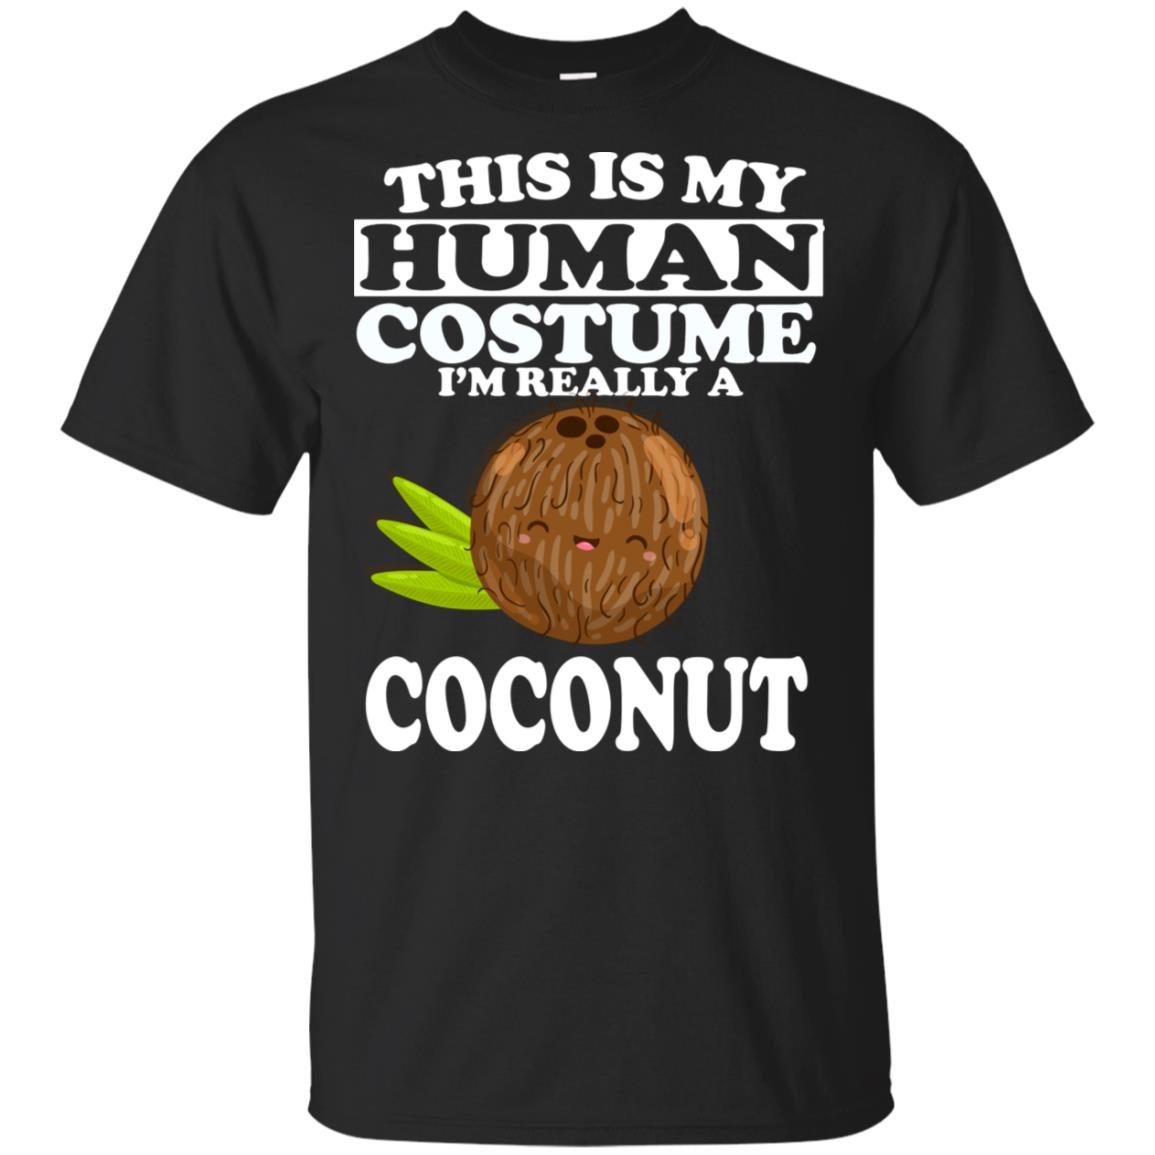 This Is My Human Costume I'm Really A Coconut Unisex Short Sleeve